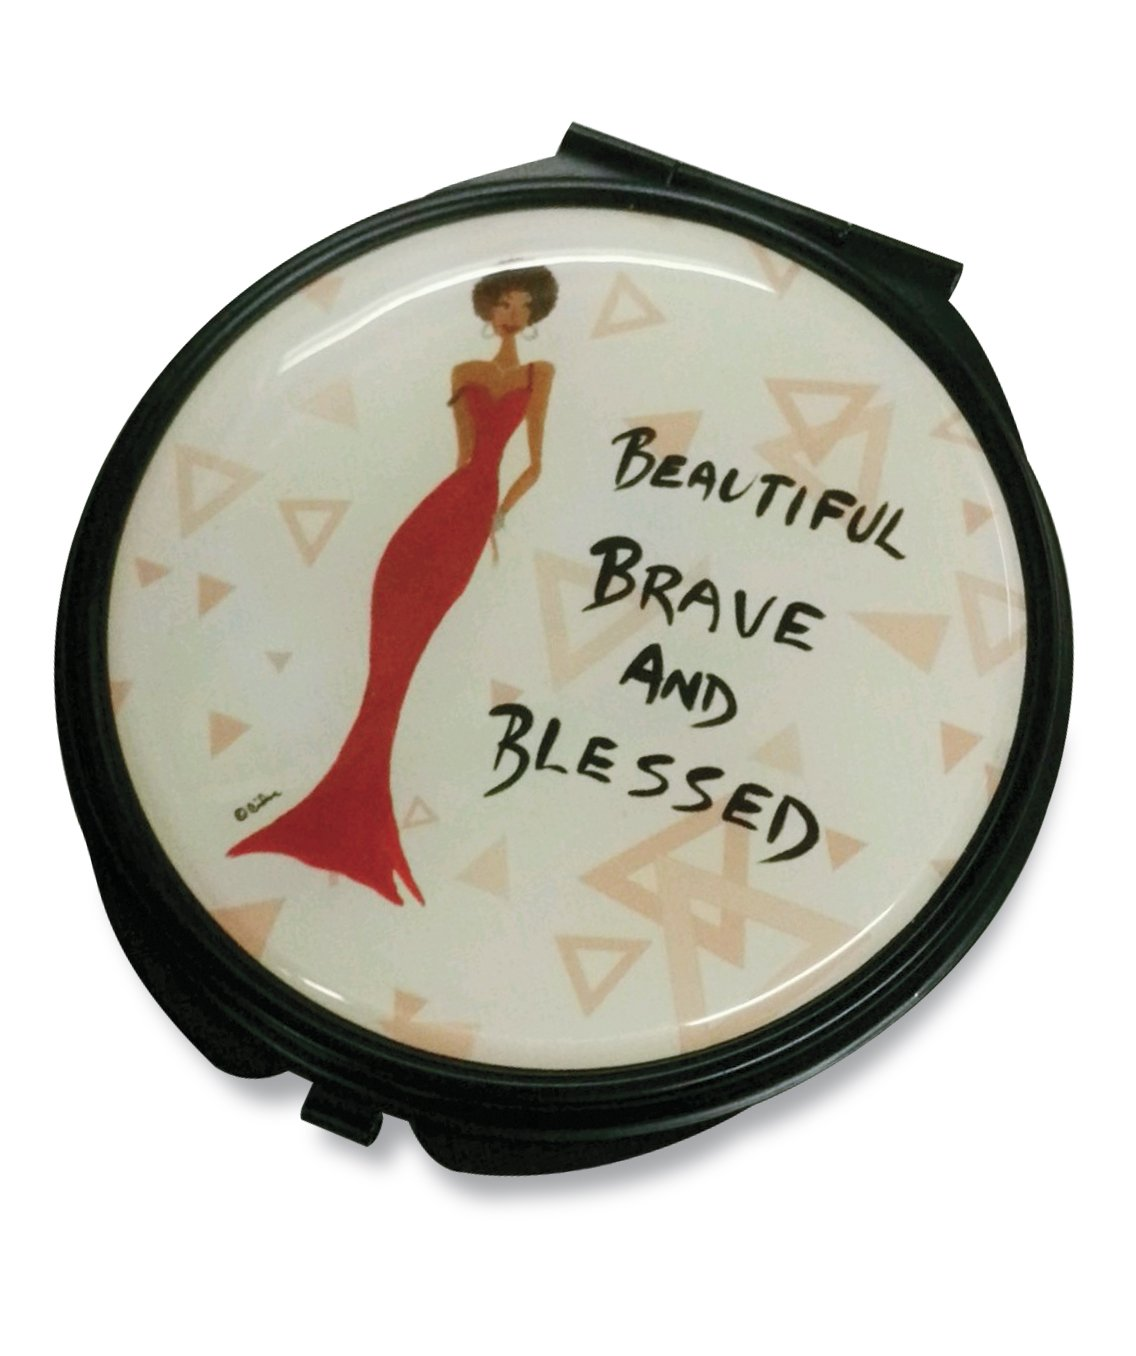 Beautiful, Brave and Blessed: African American Pocket Mirror by Cidne Wallace